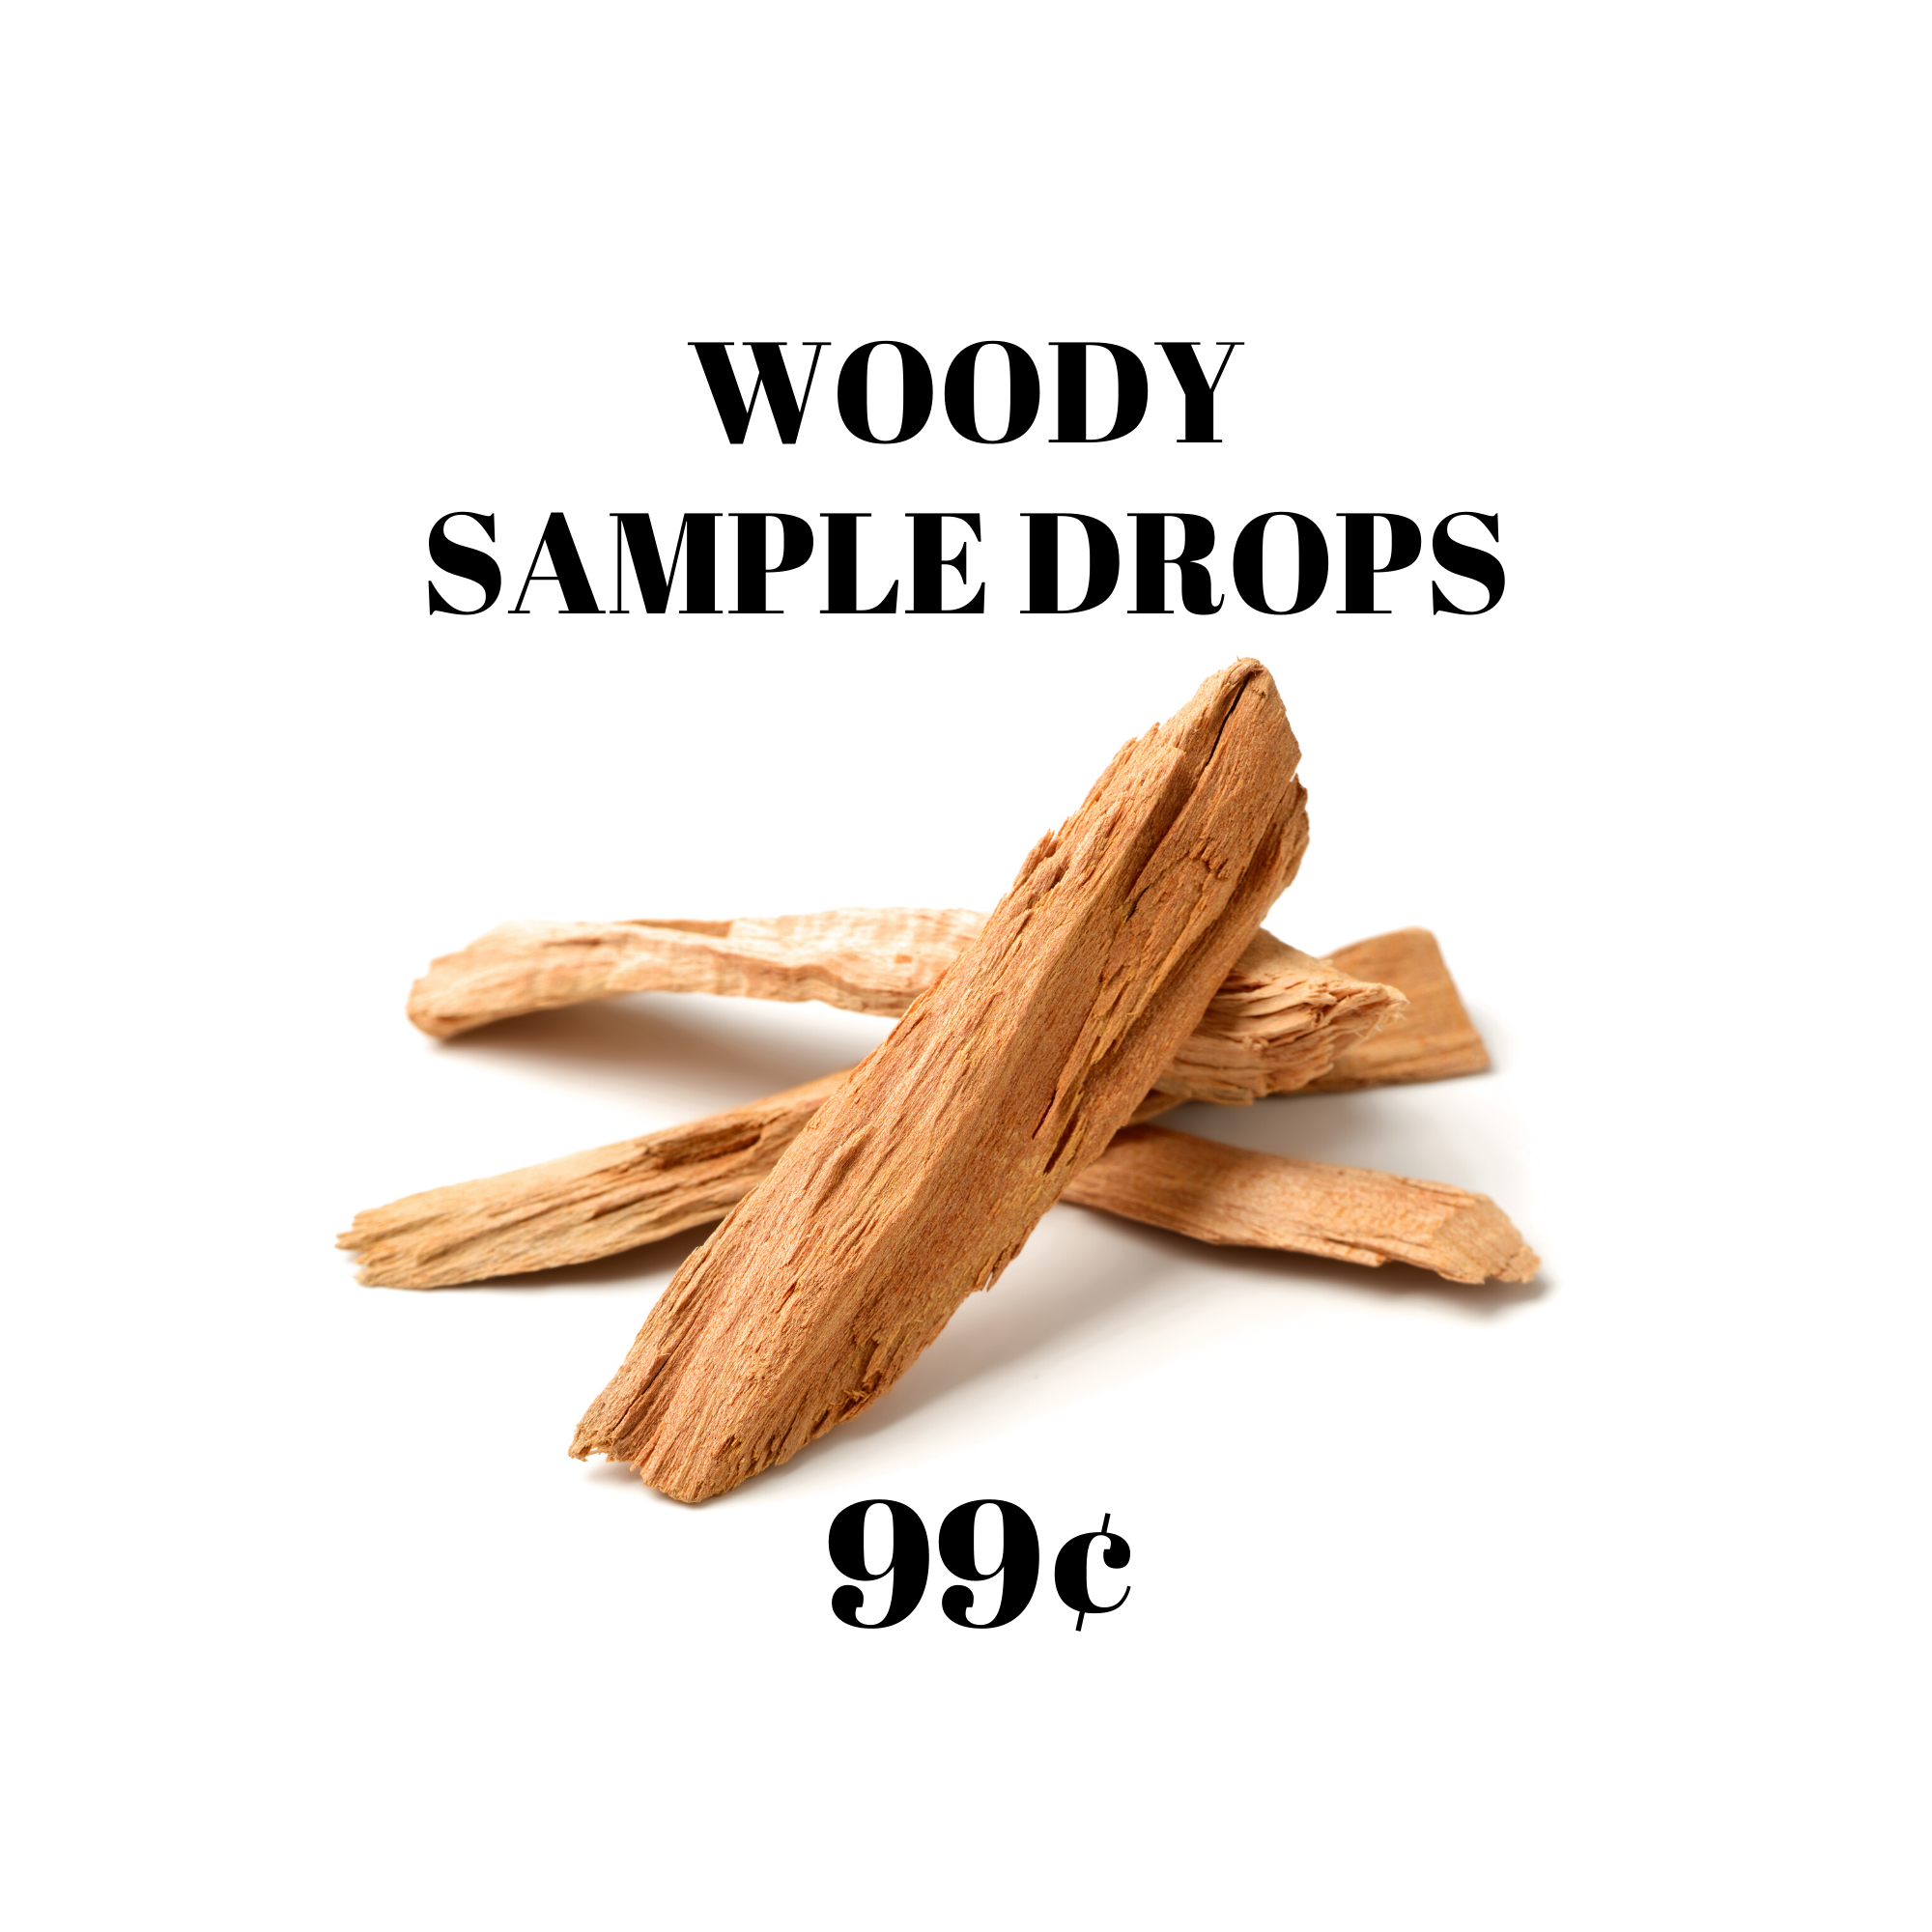 Woody Sample Drops